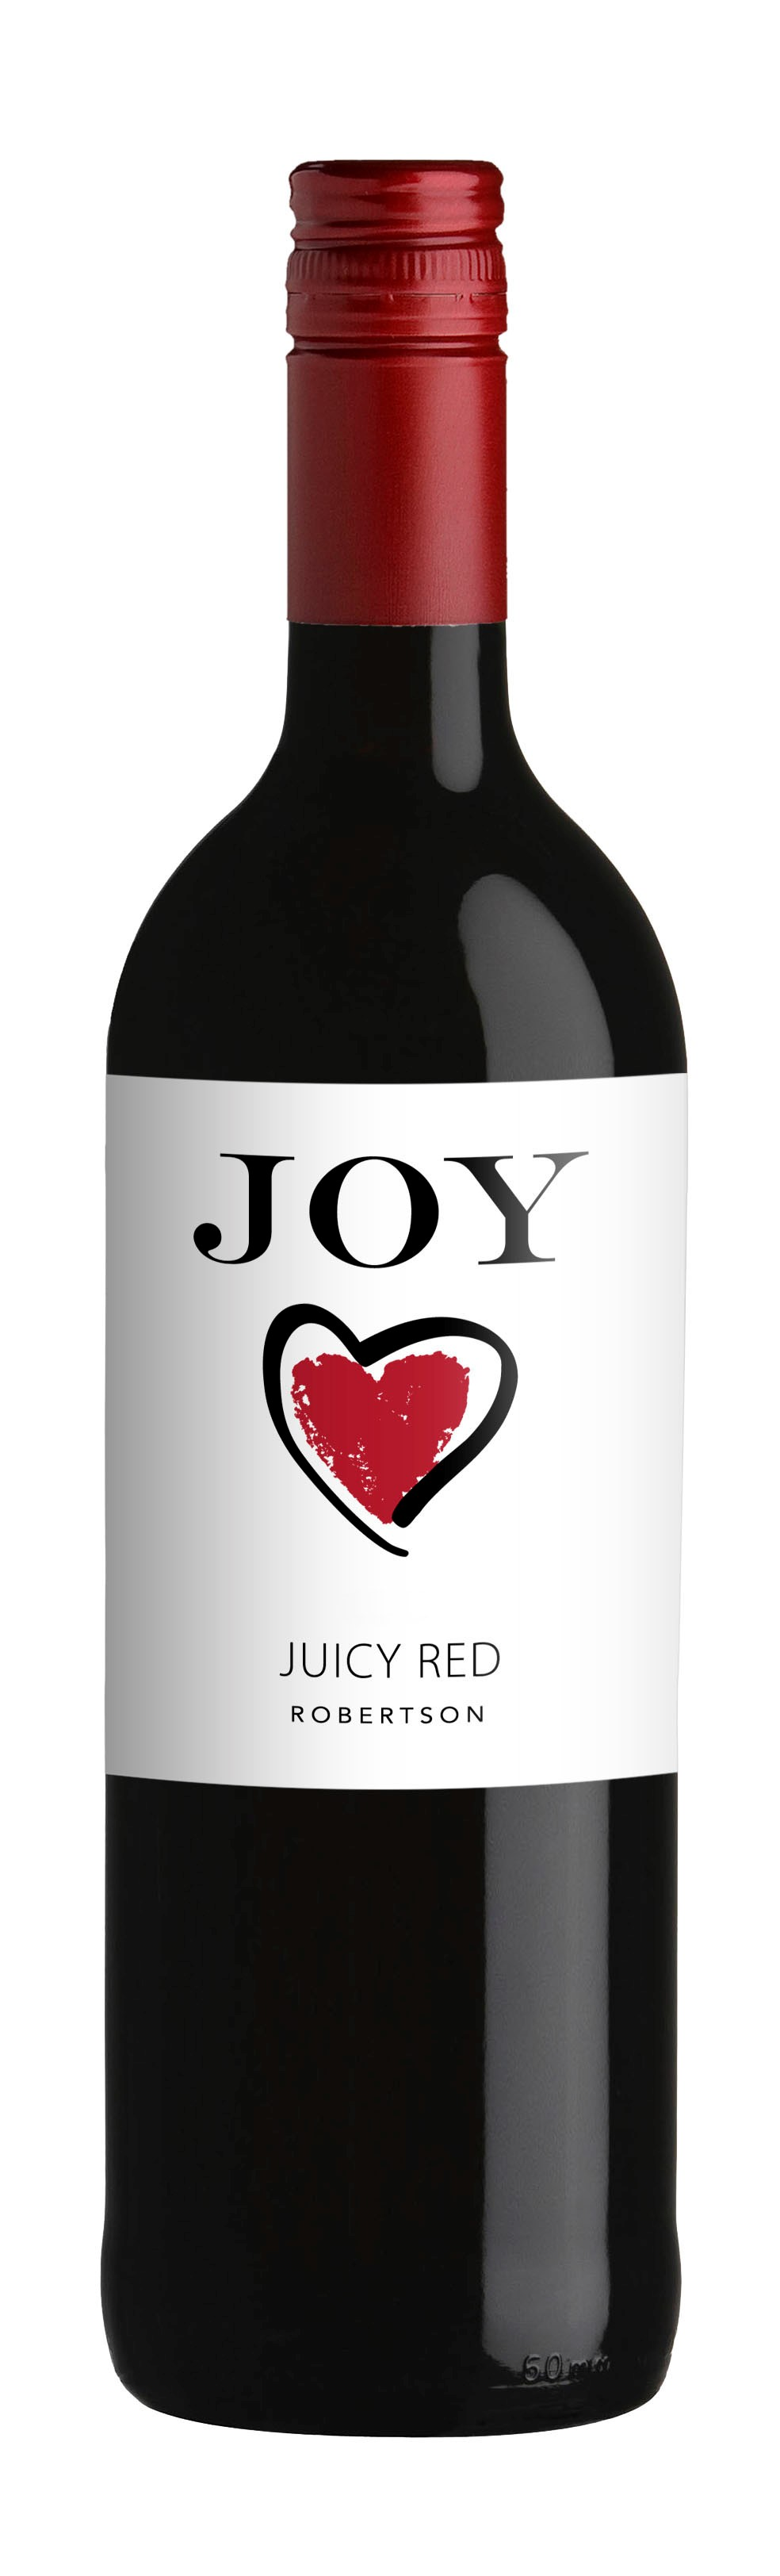 Robertson Joy Juicy Red 2018